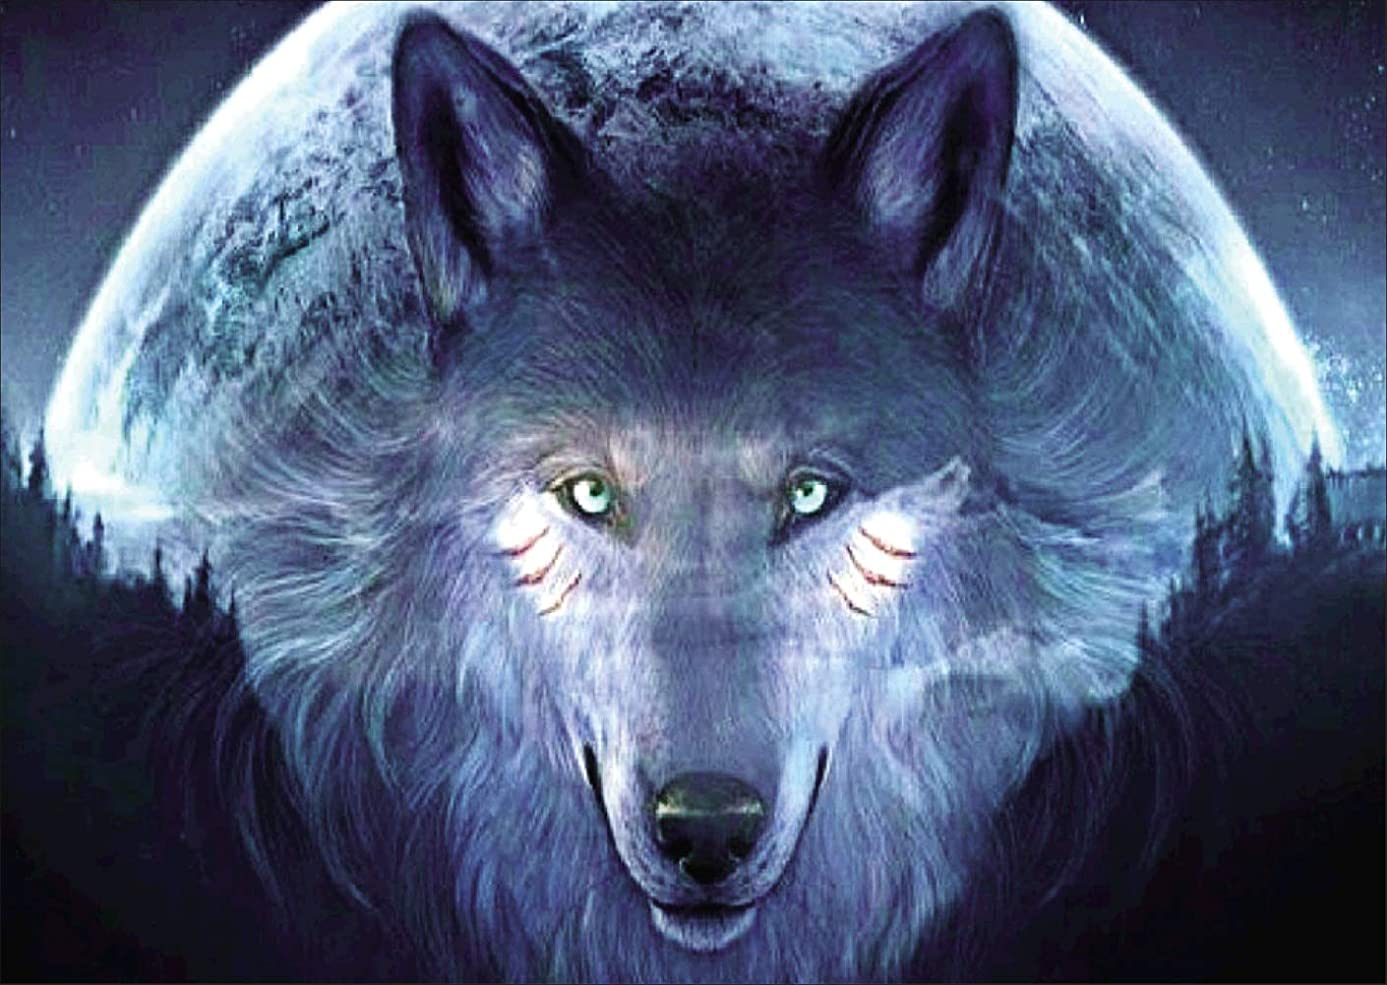 Dylan's cabin DIY 5D Diamond Painting Kits for Adults,Full Drill Embroidery Paint with Diamond for Home Wall Decor(Wolf /16x12inch)